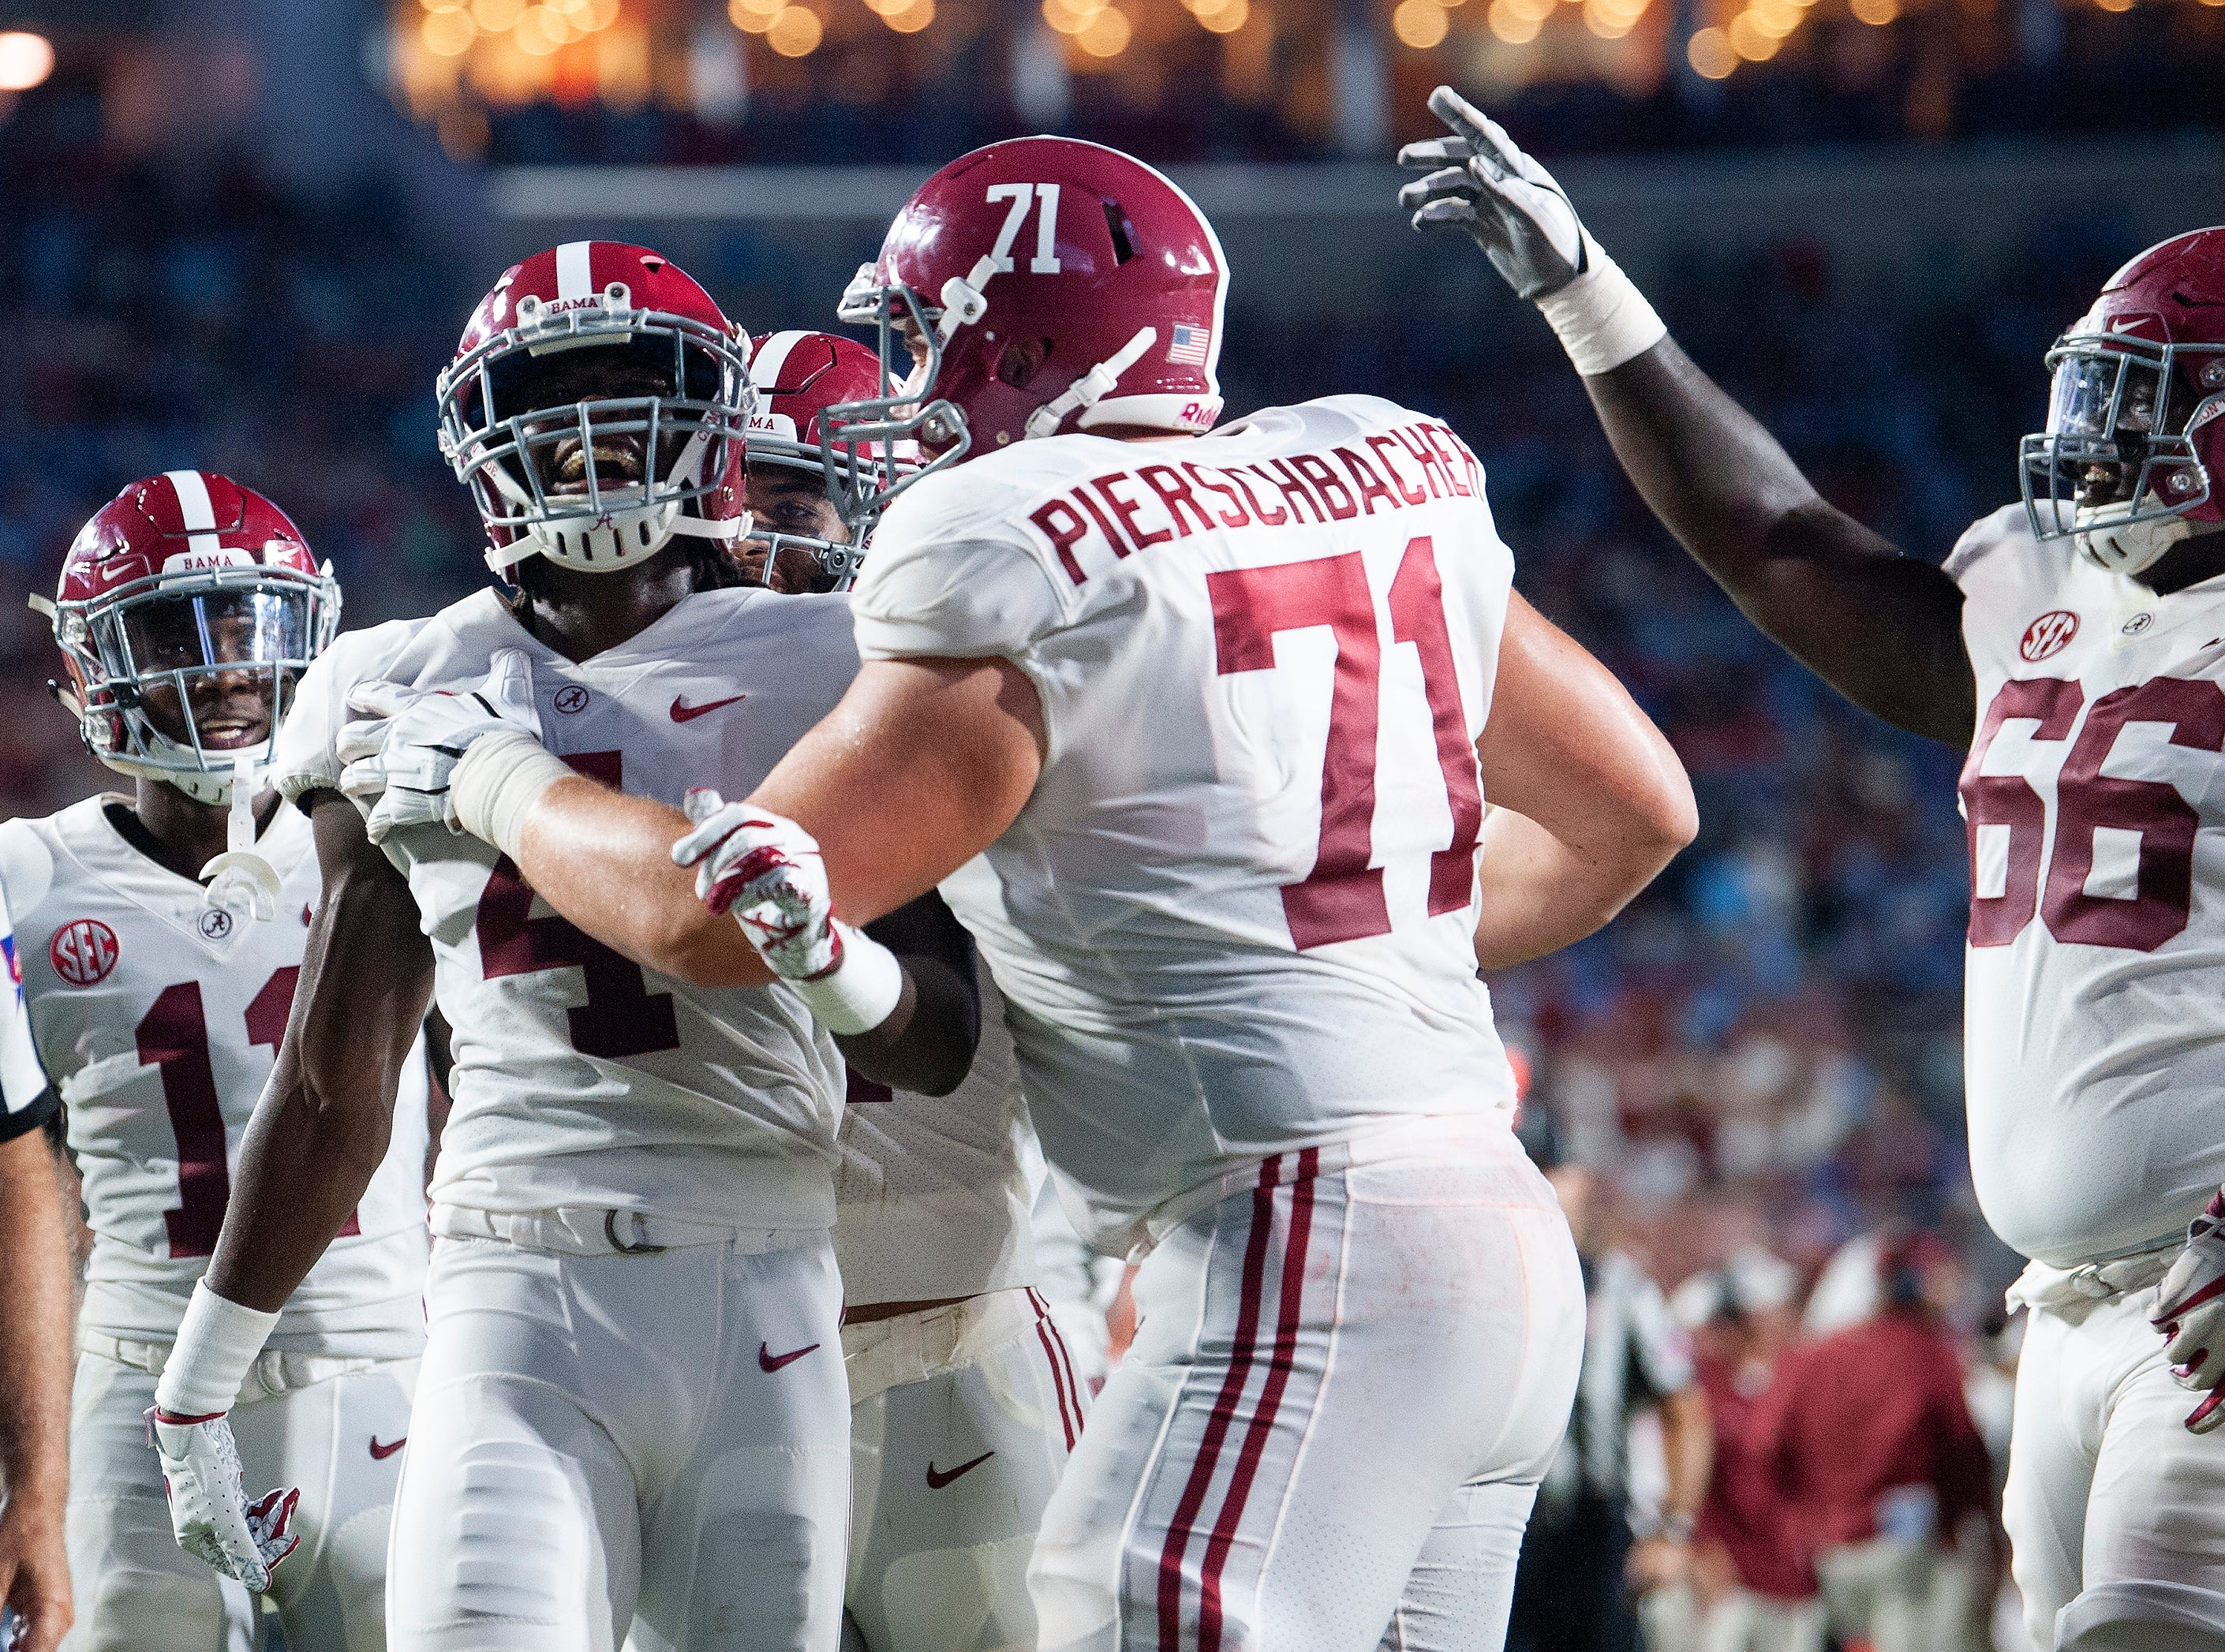 Alabama wide receiver Jerry Jeudy (4) celebrates a touchdown against Ole Miss in first half action in Oxford, Ms., on Saturday September 15, 2018.